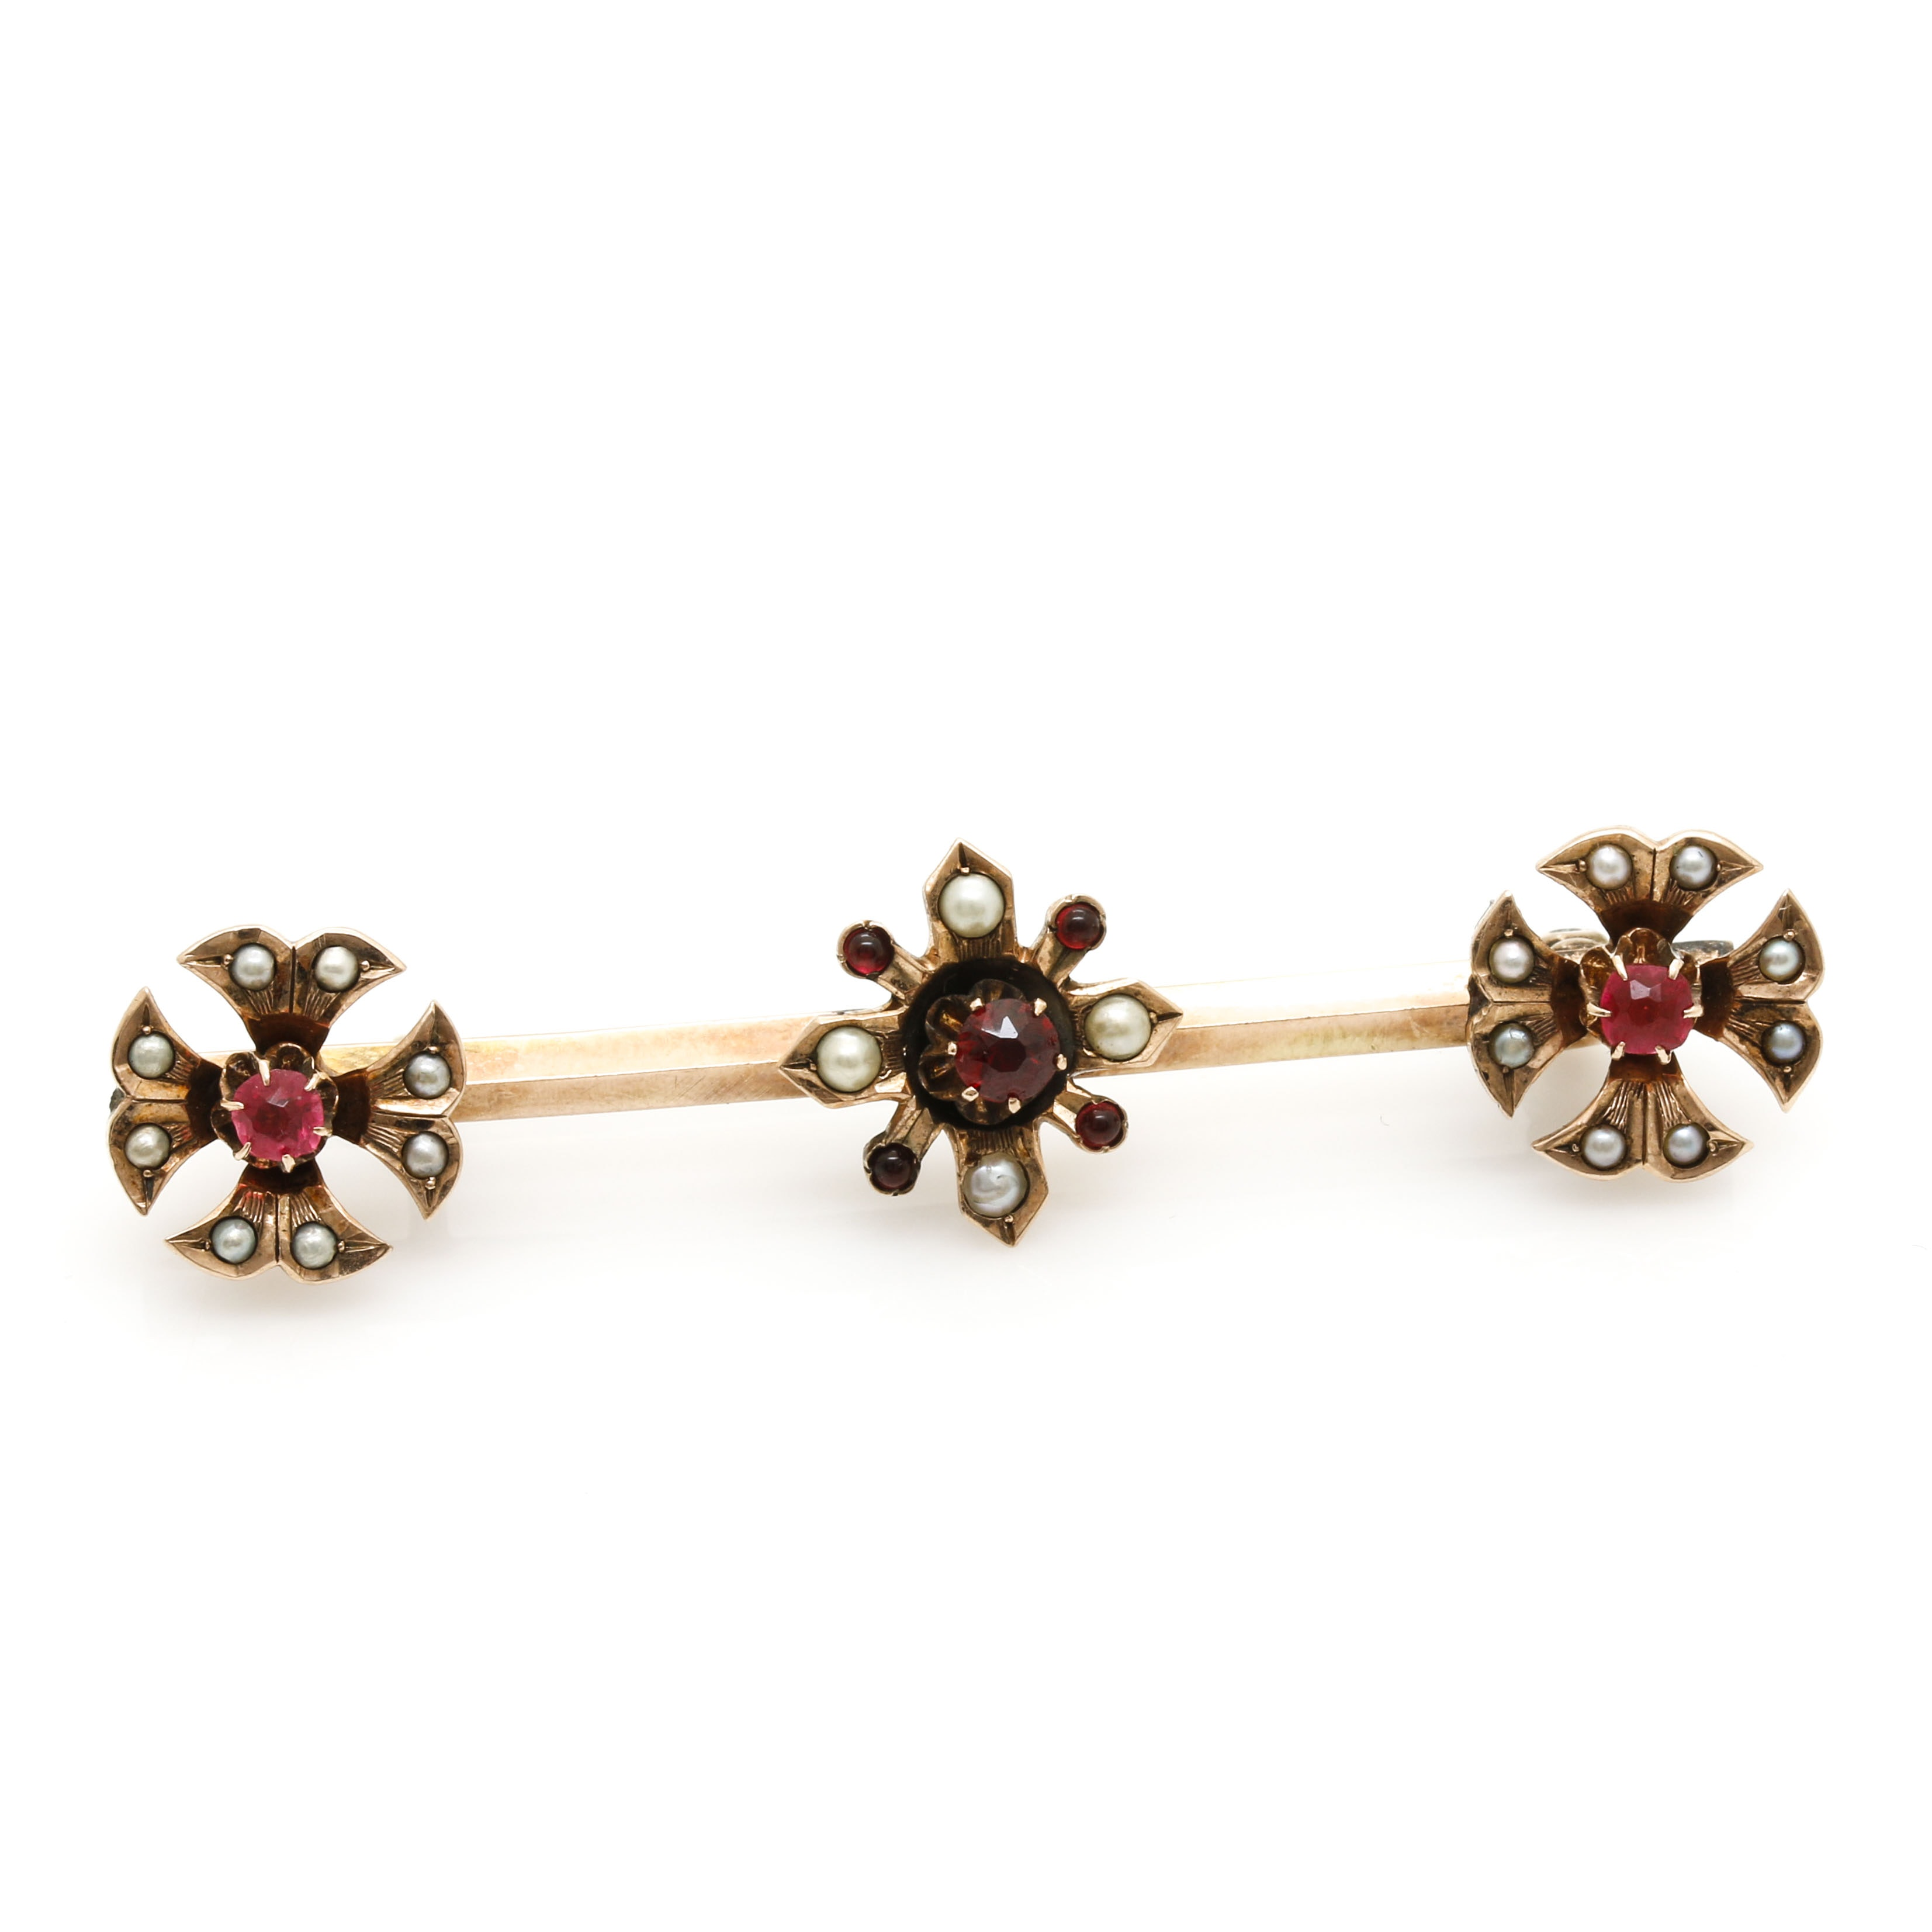 Antique Victorian 10K Yellow Gold Floral Bar Pin